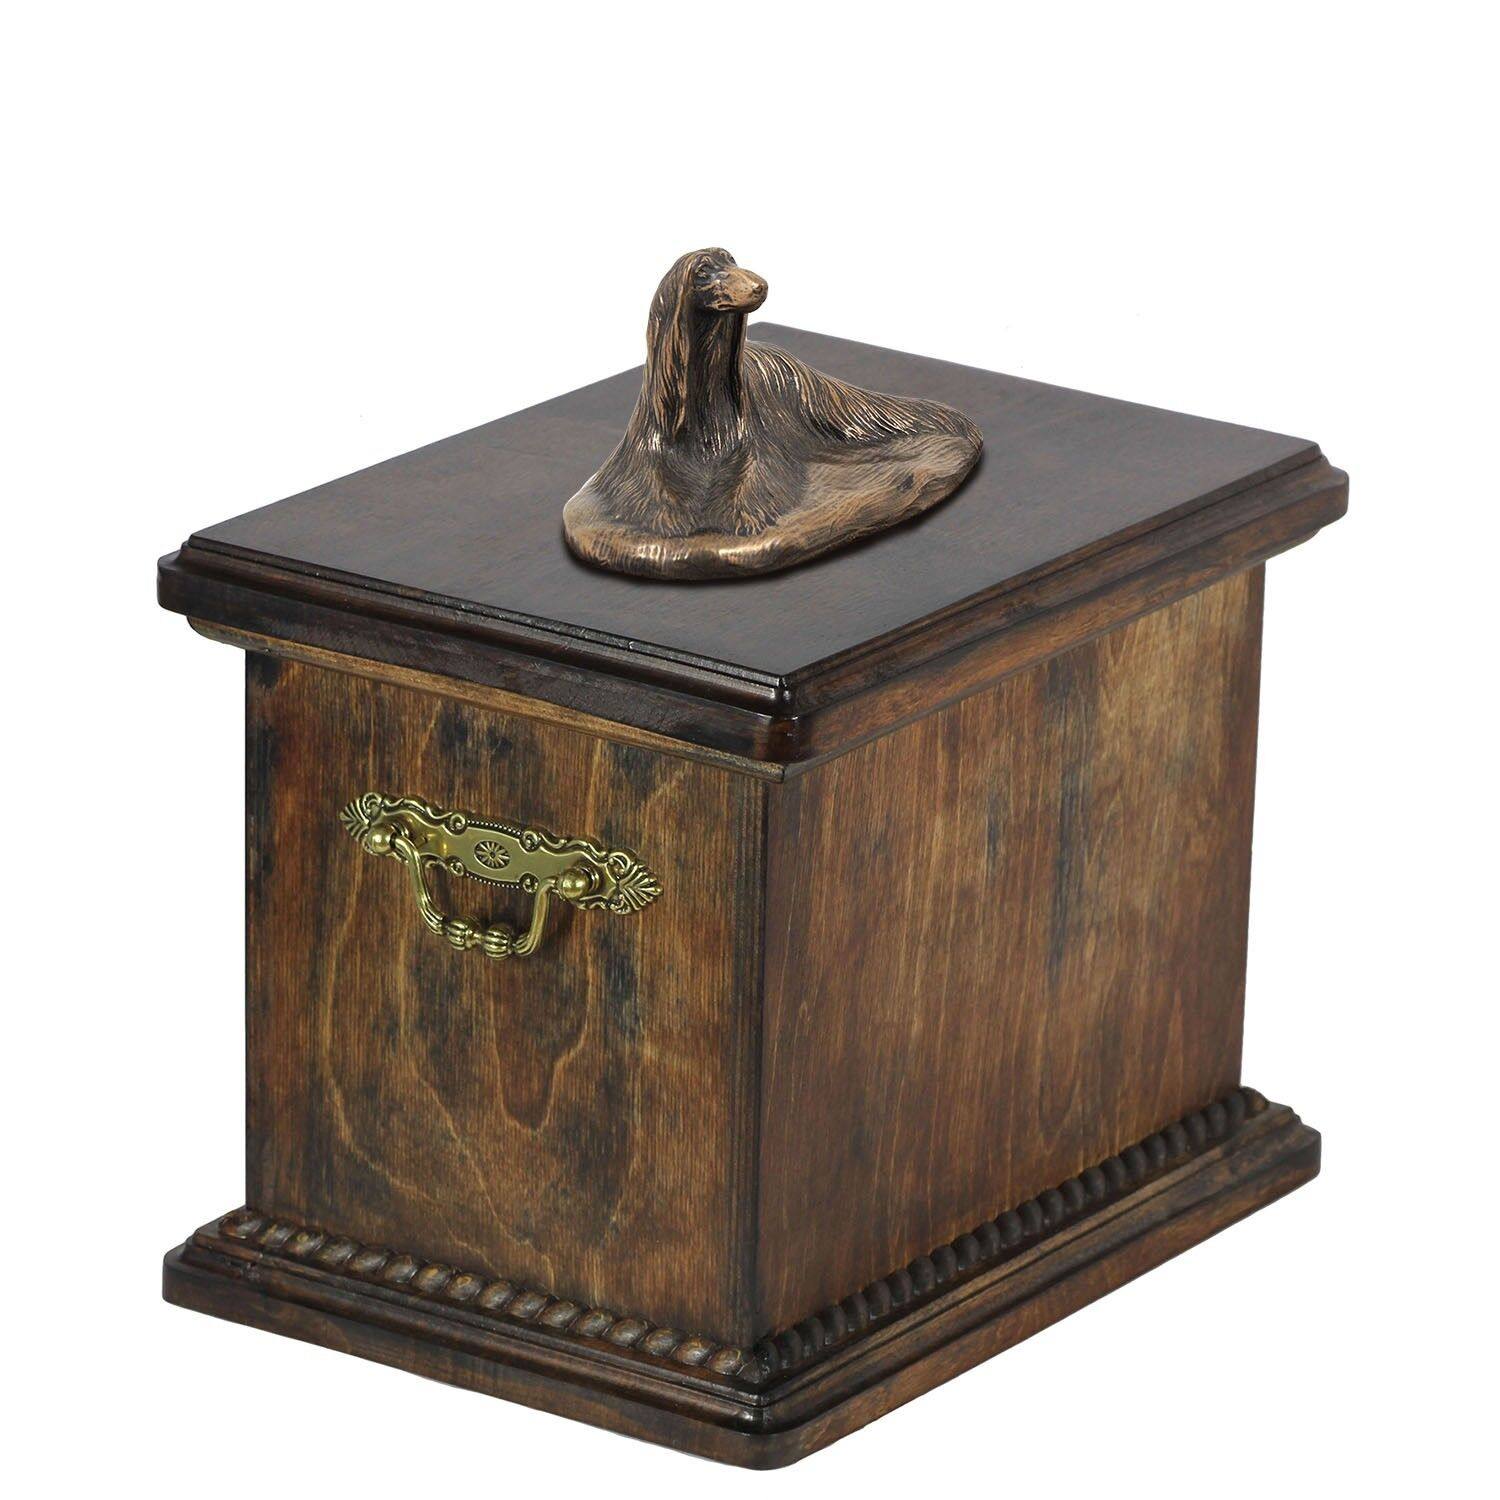 Afghan Hound - wooden urn with dog statue, Art Dog type 1